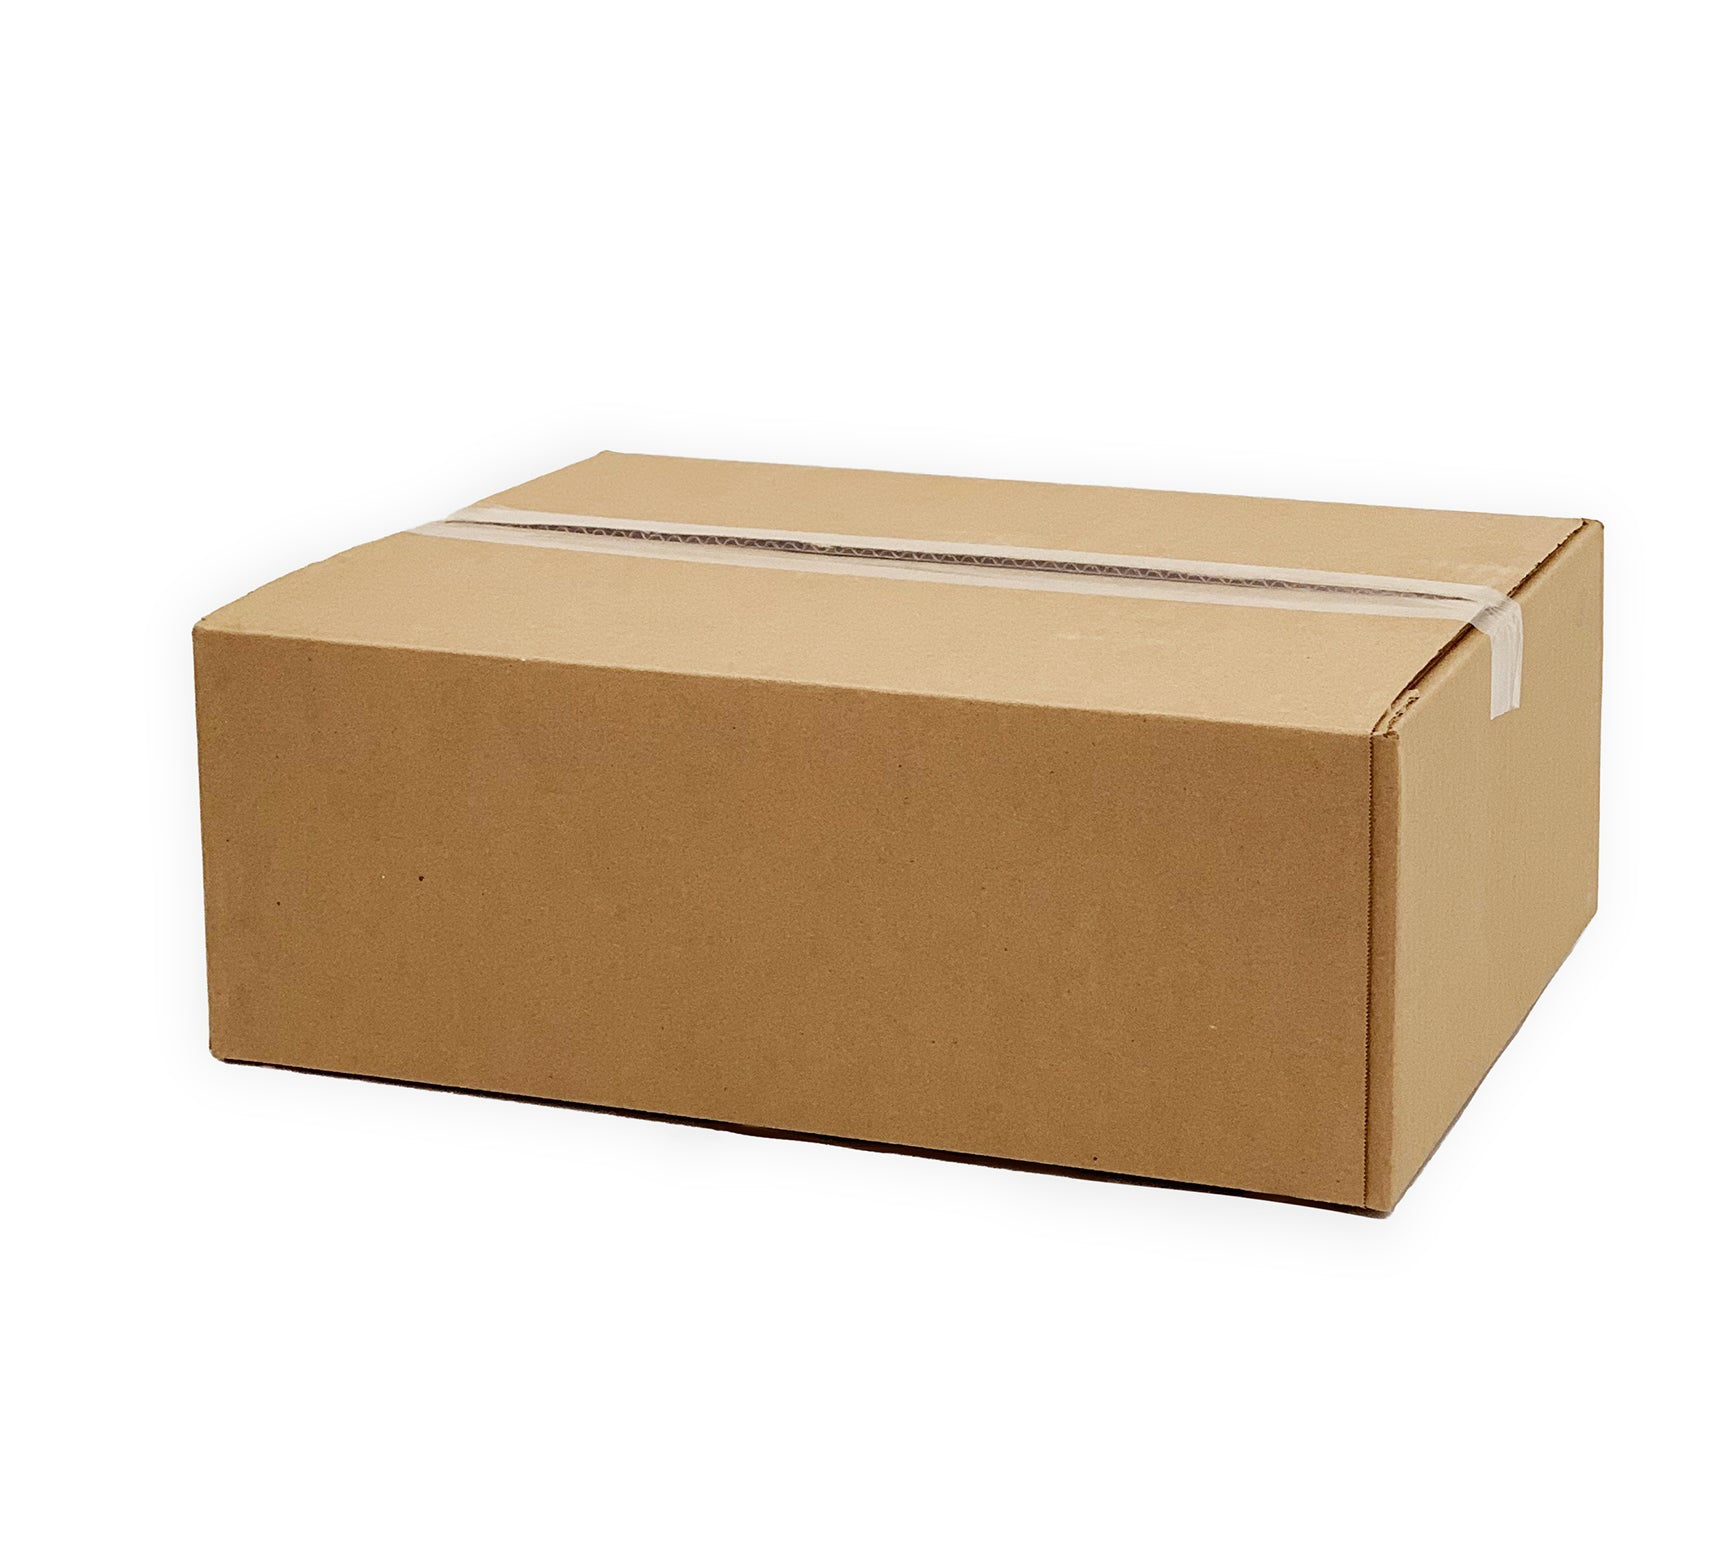 Small Shipping Box - 17″ x 13″ x 6″